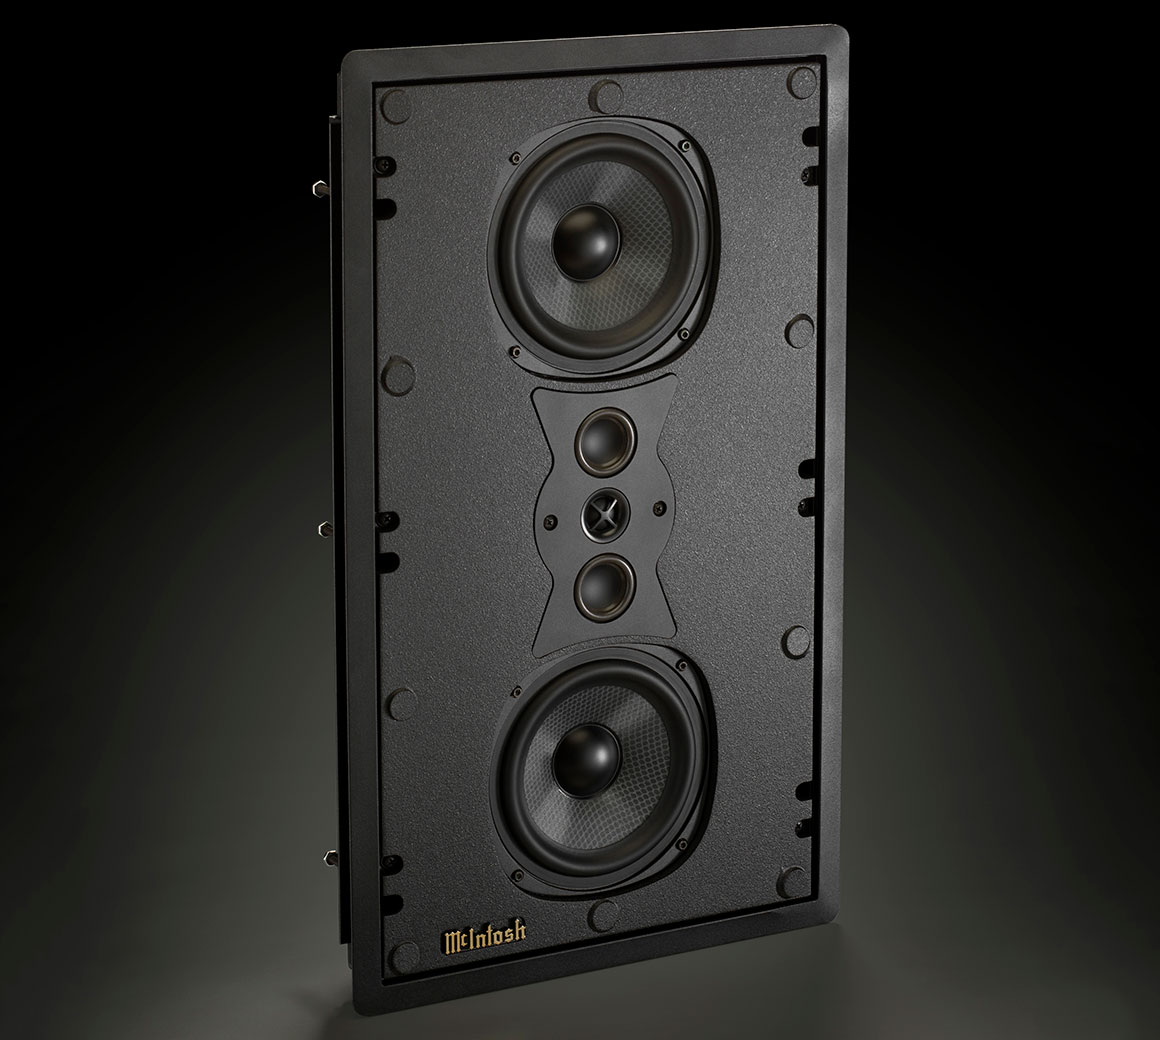 mcintosh-installation-speakers-1.jpg